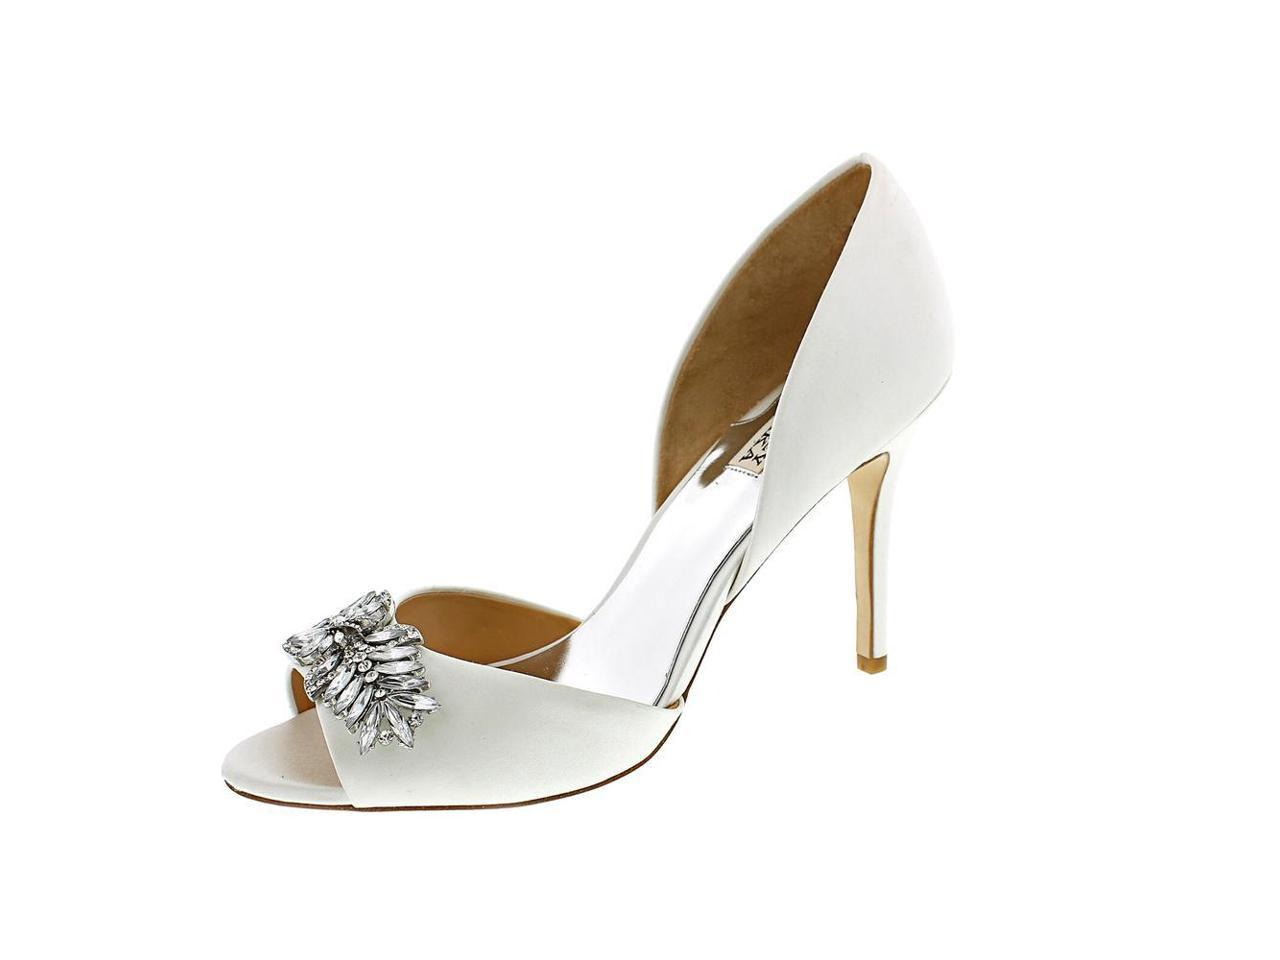 Badgley Women Mischka Nikki Women Badgley US 8.5 White Sandals c5ee36